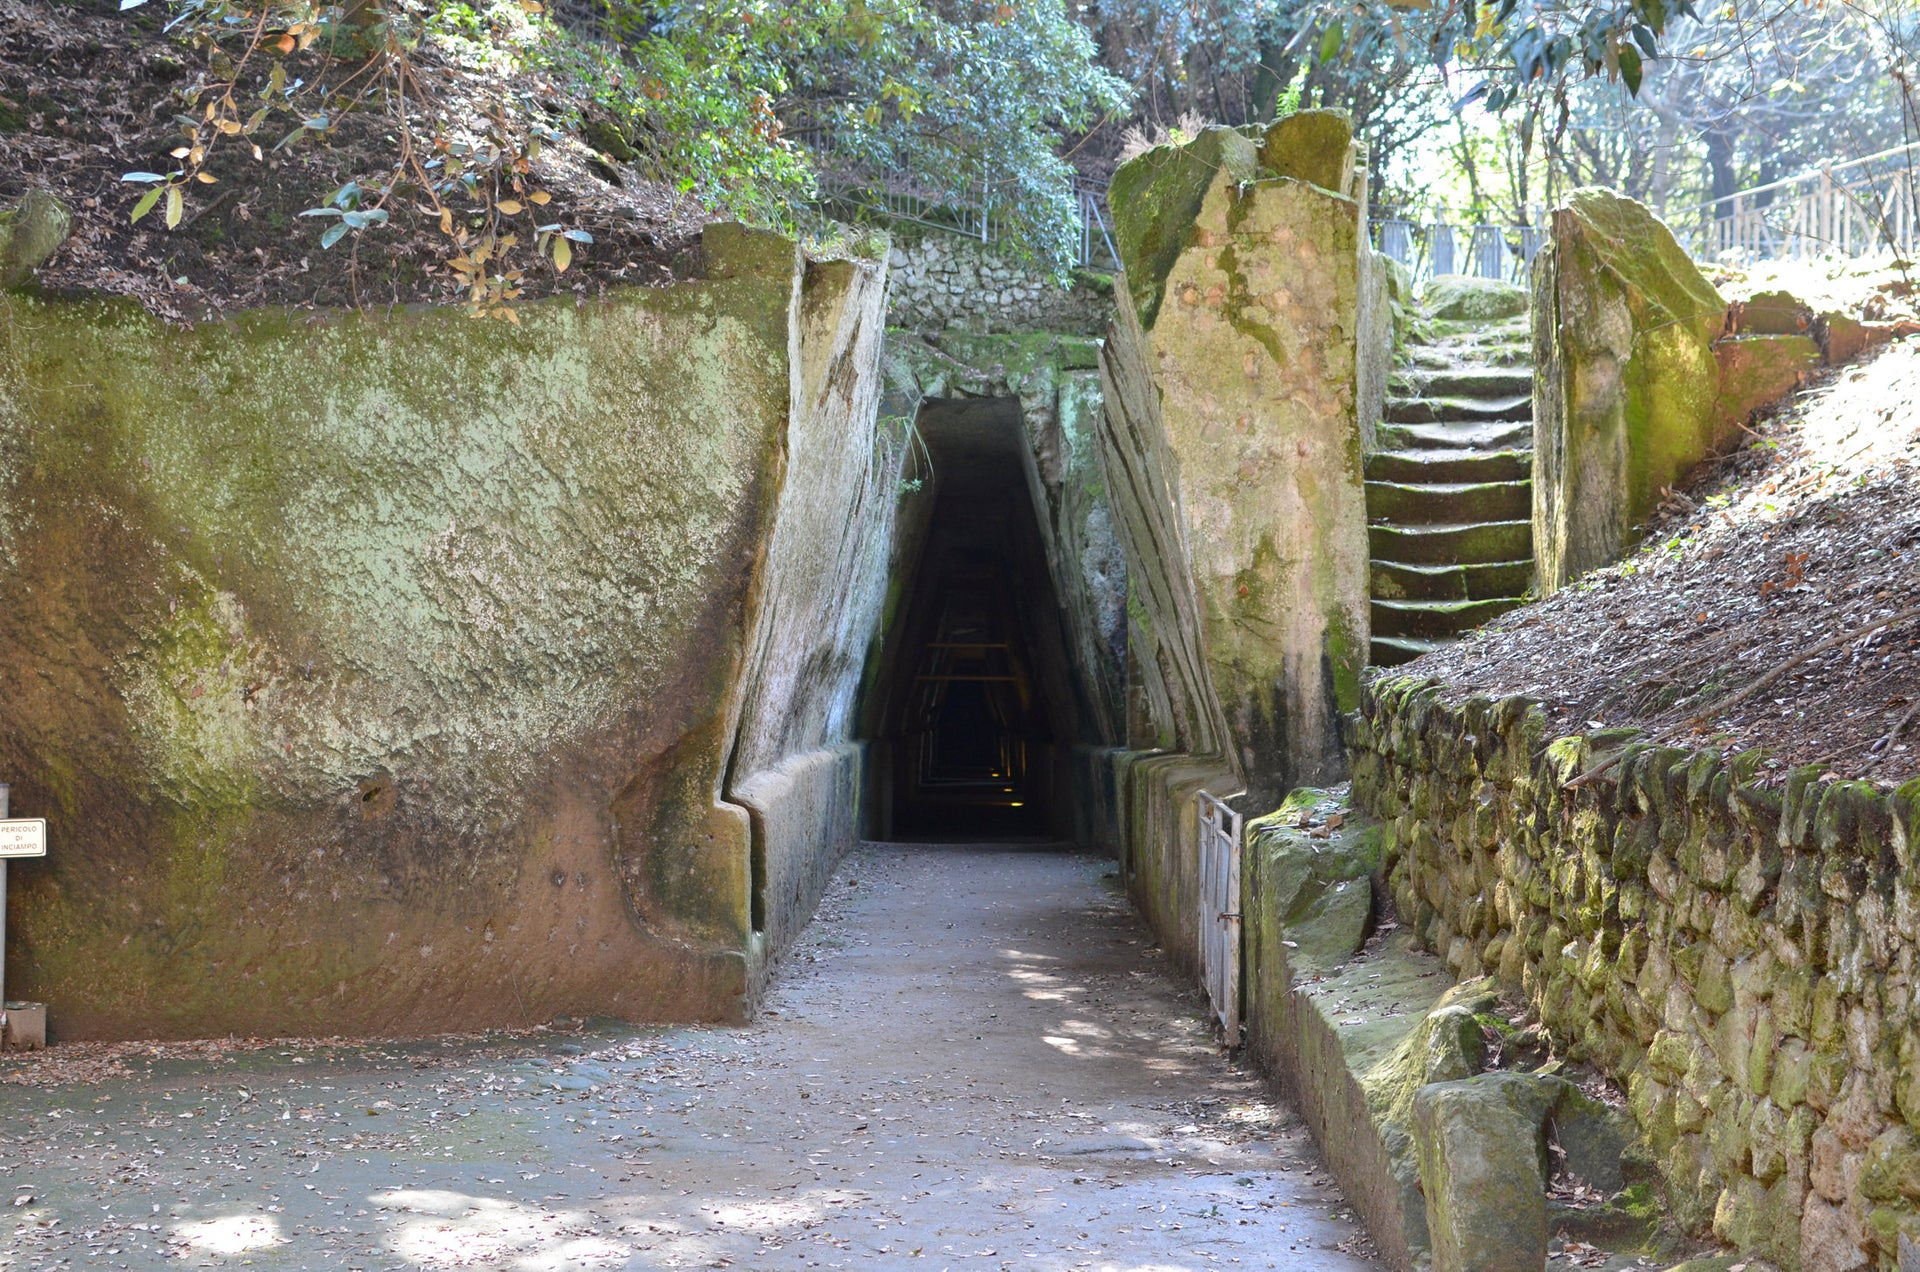 This cave in Cumae is thought to have been the seat of the Cumaean Sibyl